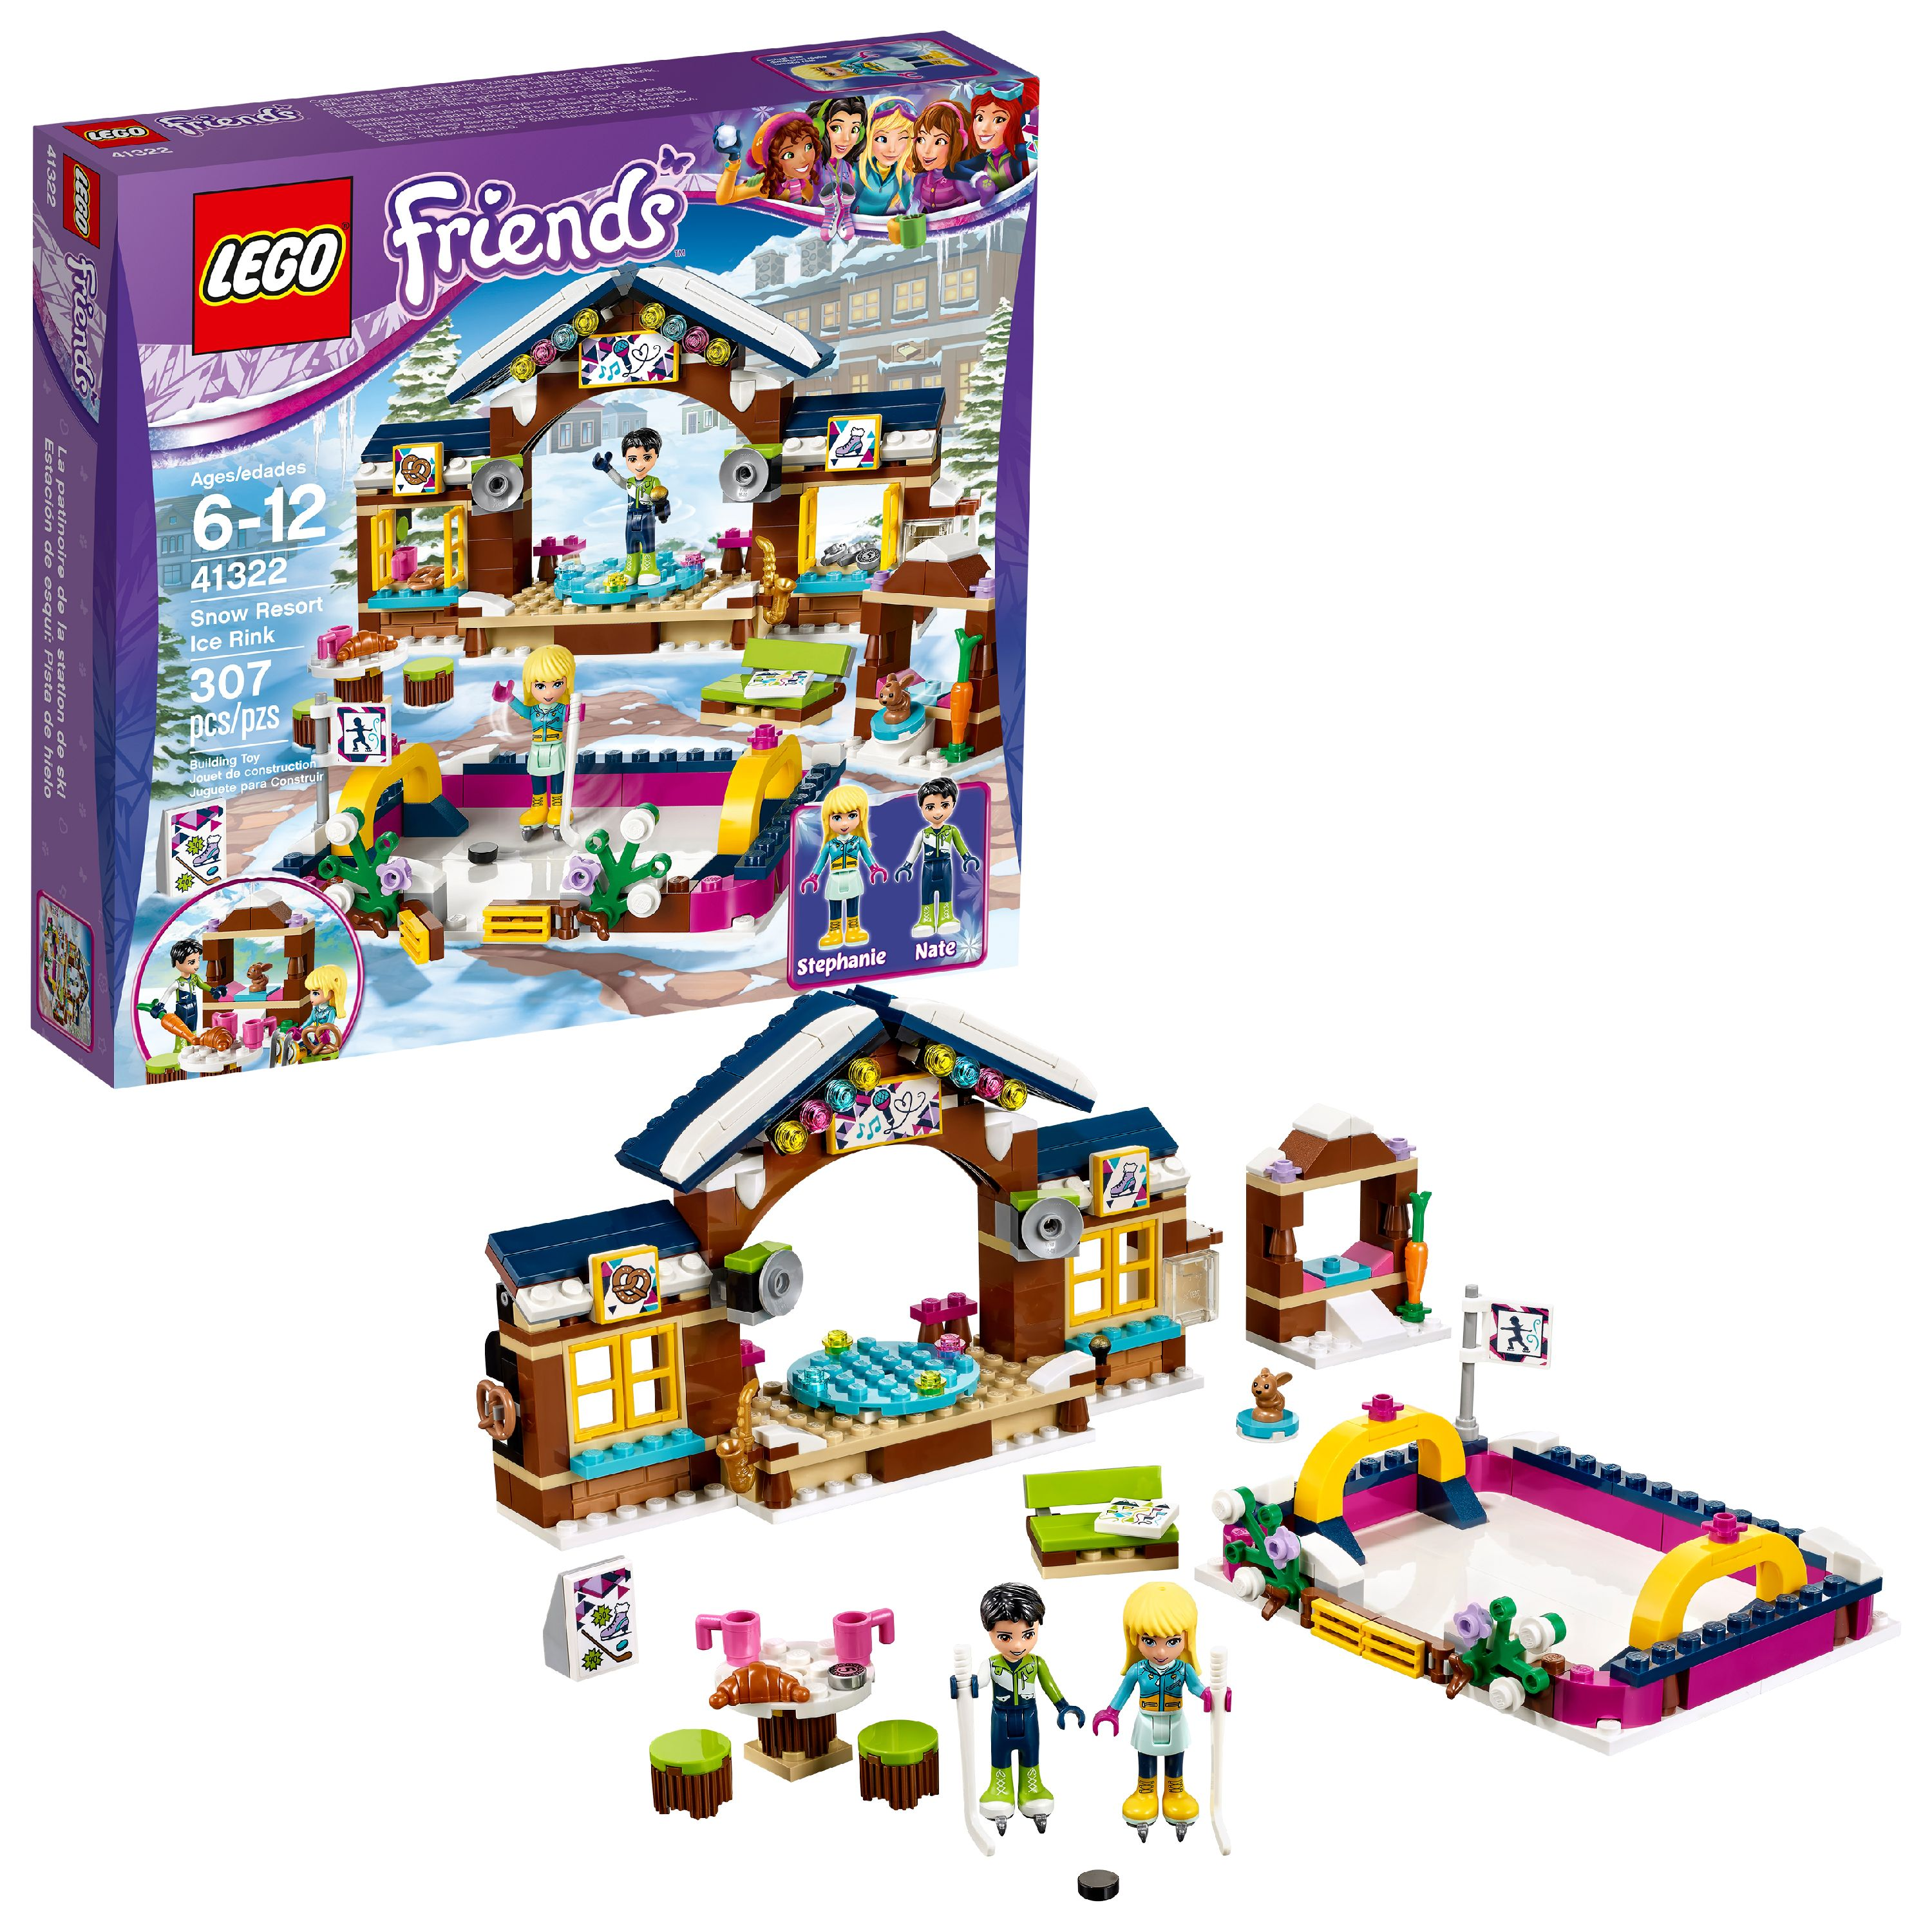 LEGO Friends Snow Resort Ice Rink 41322 (307 Pieces)